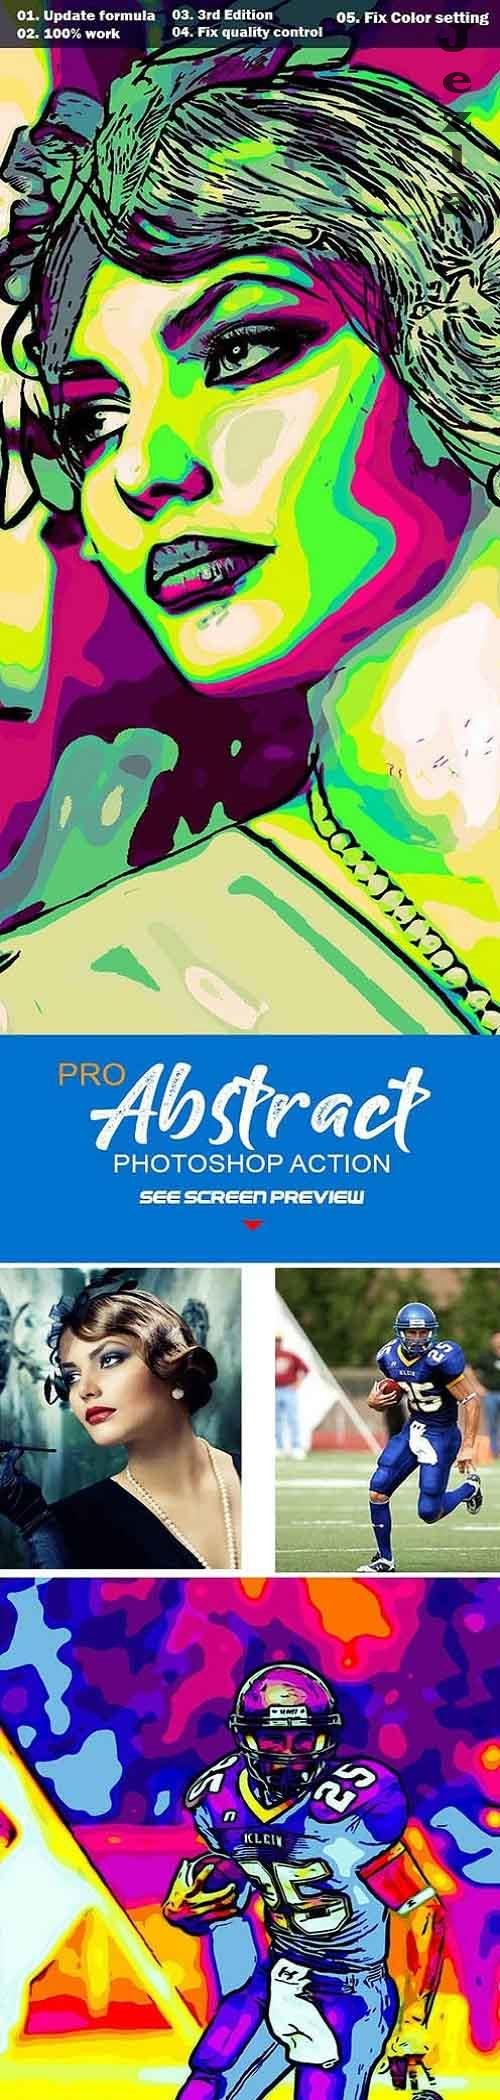 Pro Abstract Photoshop Action 27540213